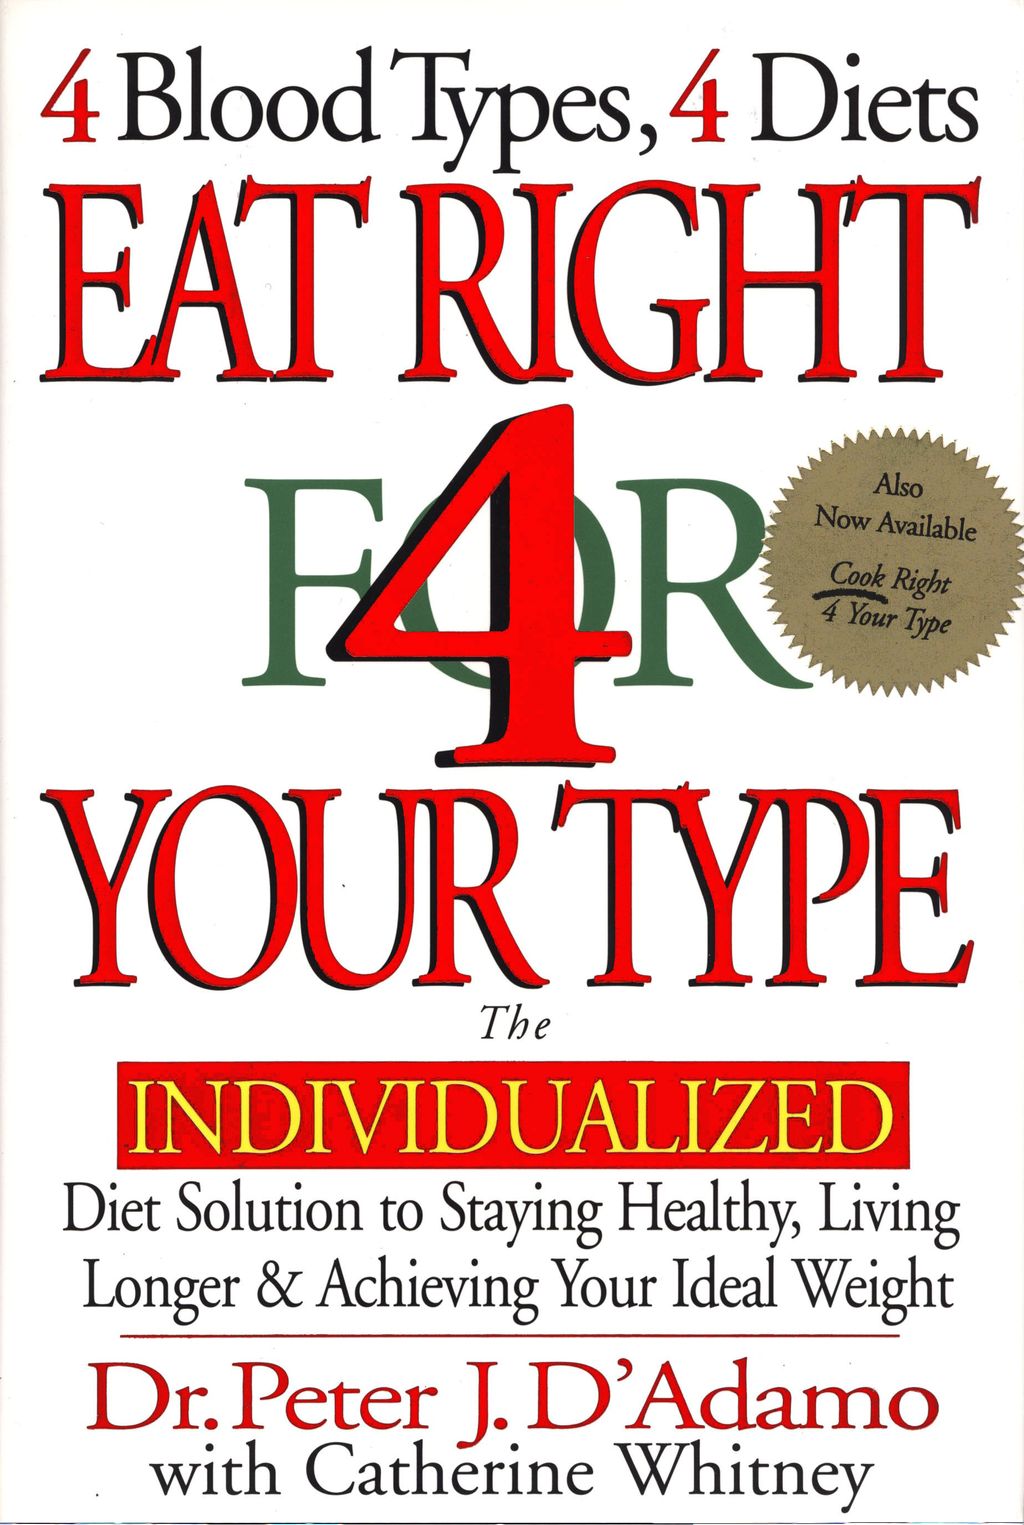 Eat Right 4 Your Type By: Catherine Whitney,Dr. Peter J. D'Adamo